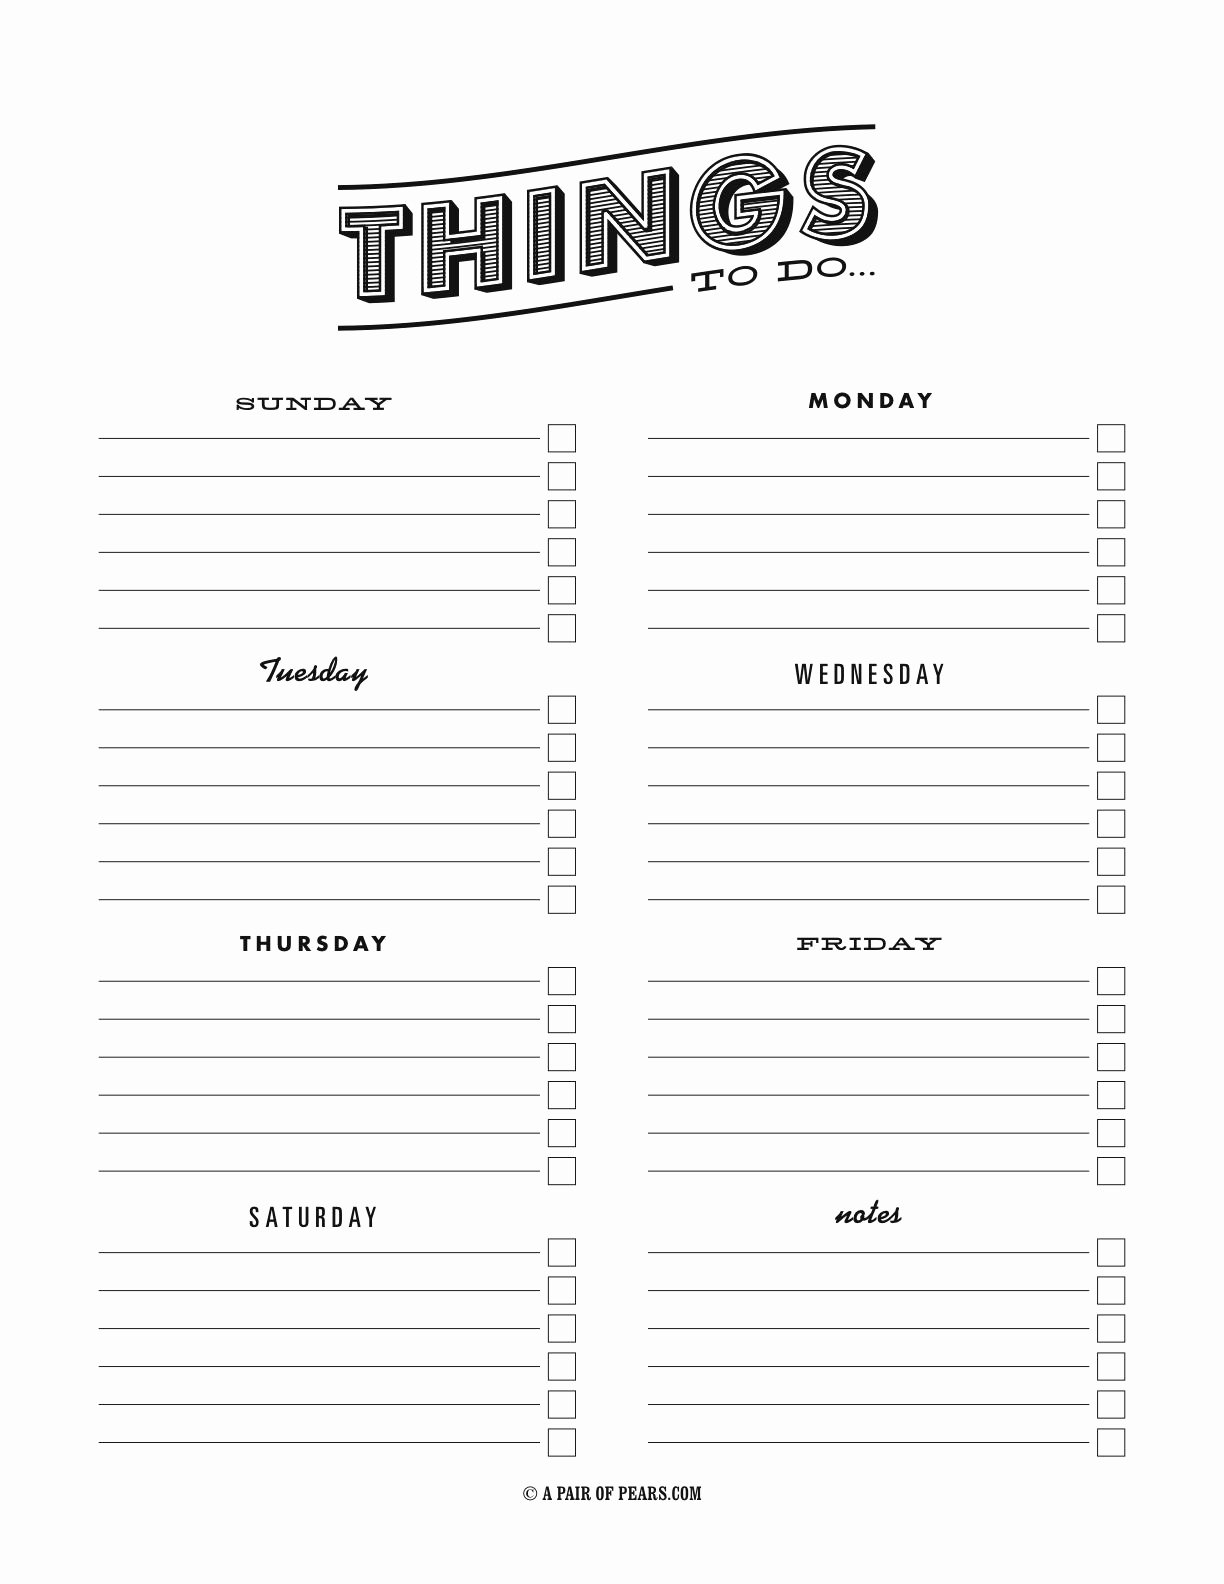 Things to Do List Template New Things to Do Template Pdf Fancy to Do List